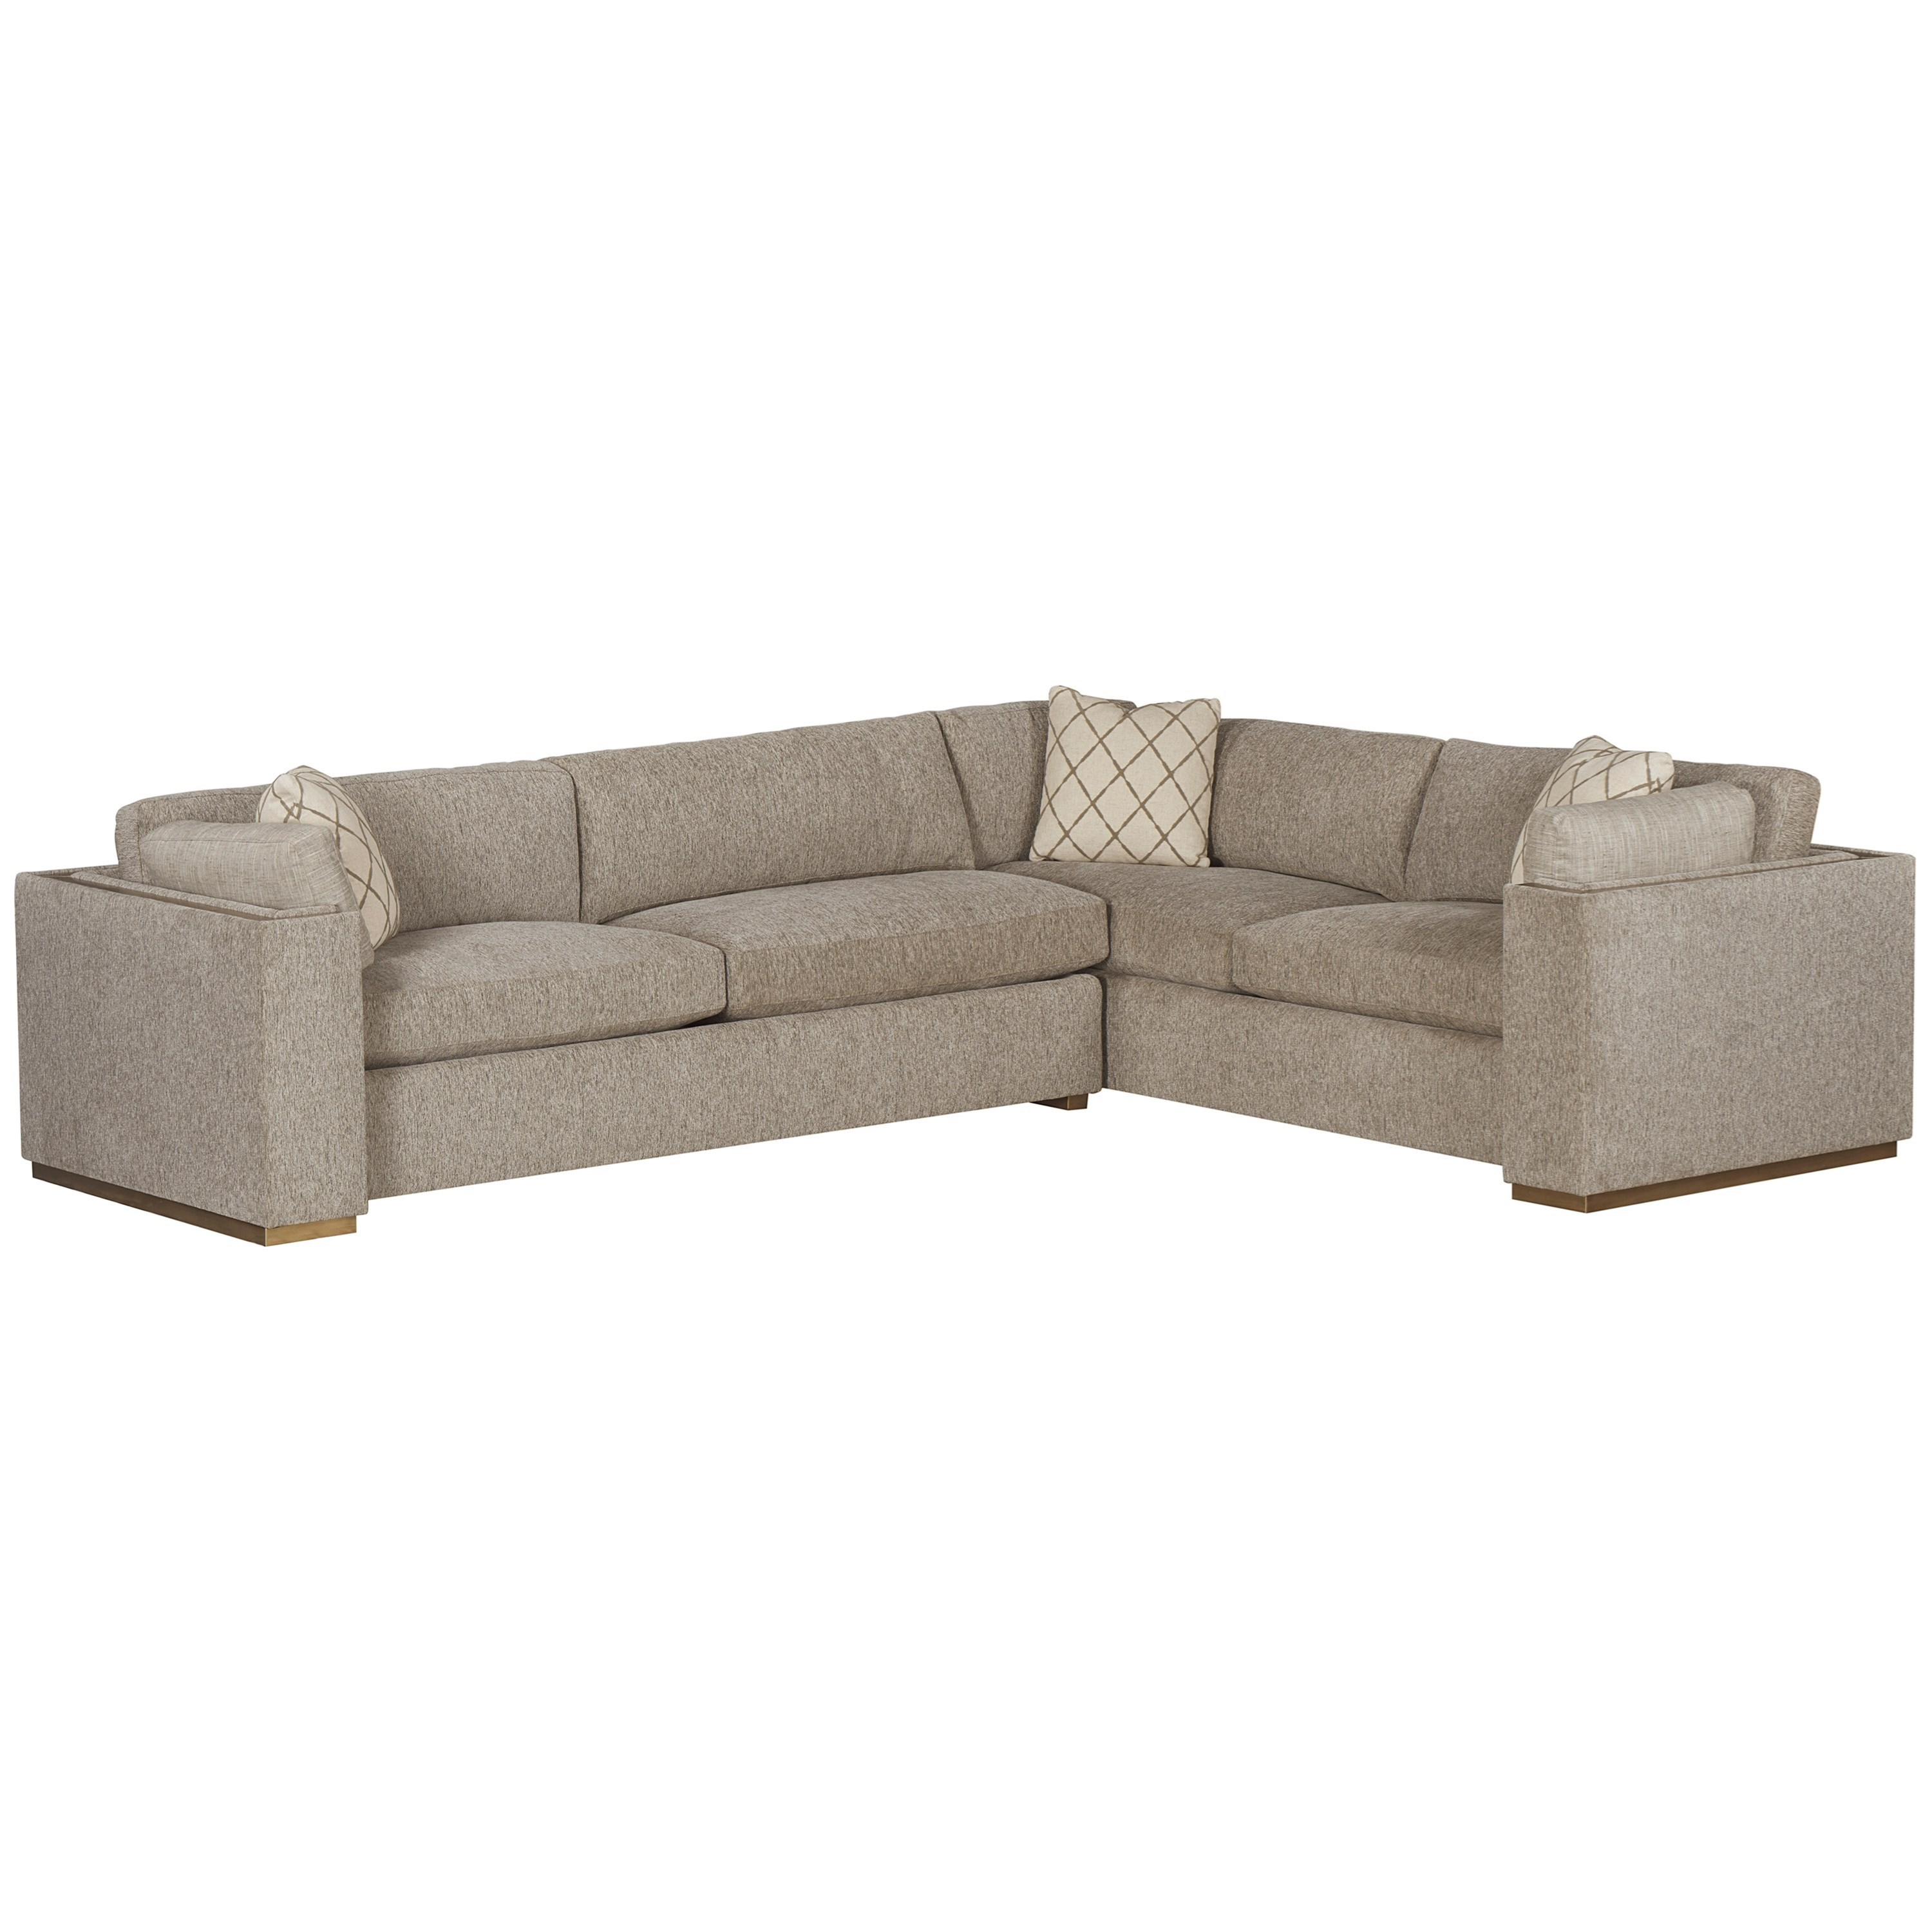 WoodWright Upholstery Sectional Sofa by A.R.T. Furniture Inc at Dream Home Interiors